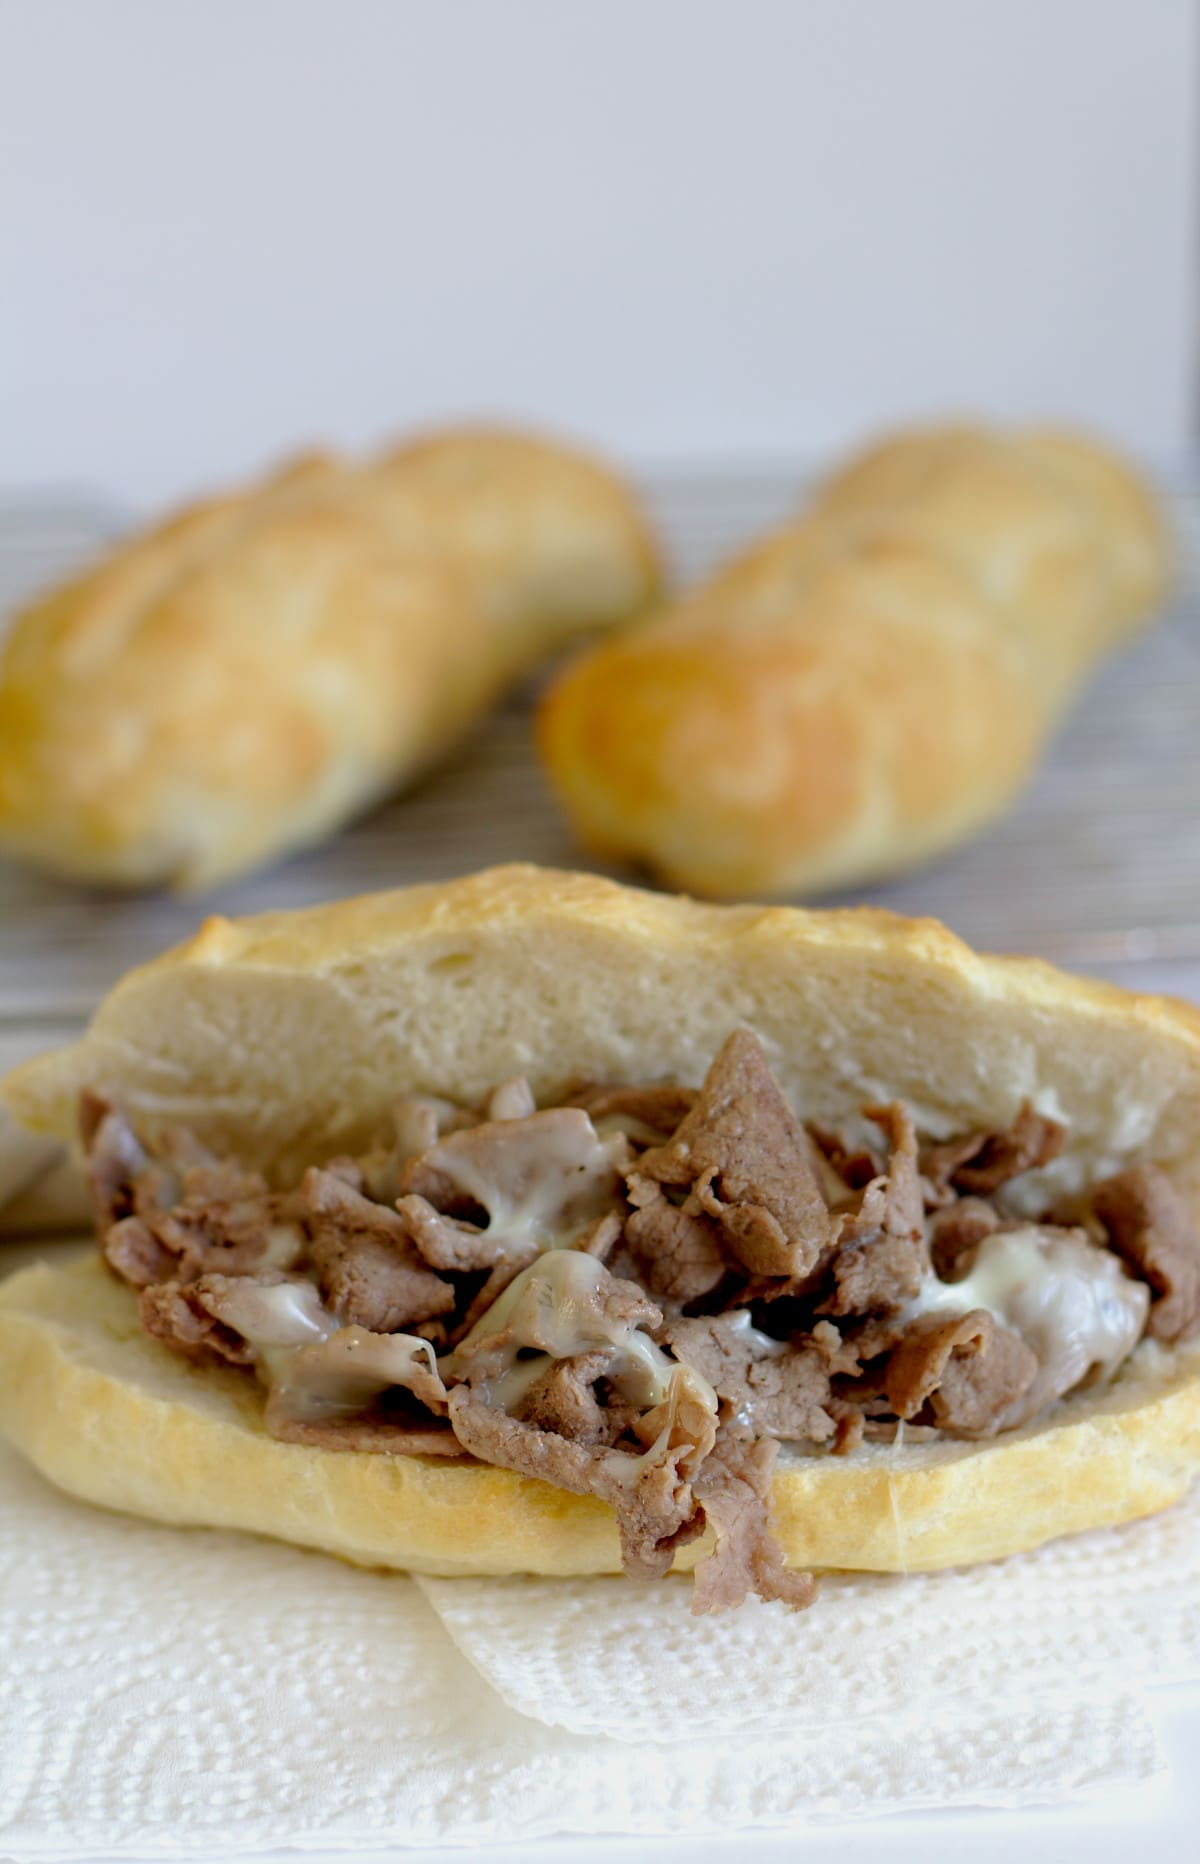 A philly cheesesteak in front of more buns.